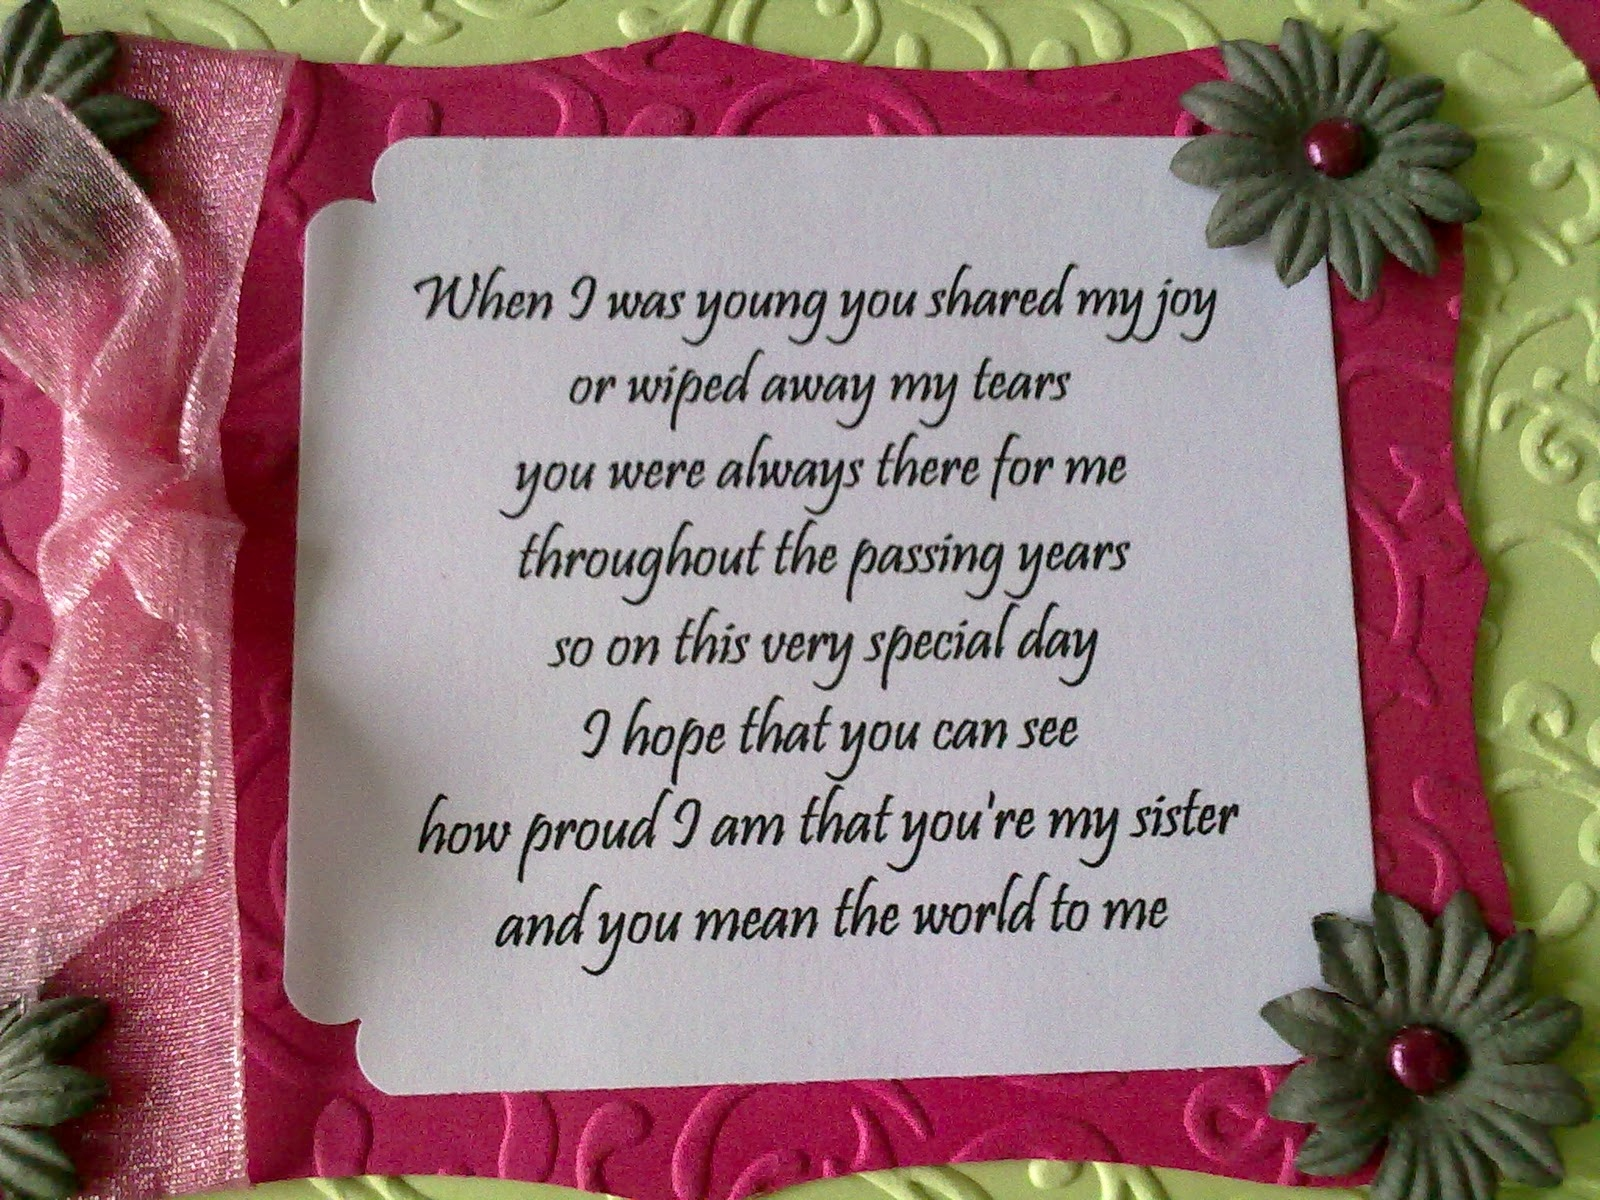 birthday verses for sister ; birthday-card-verses-for-sister-in-law-new-nephew-birthday-card-verses-alanarasbach-of-birthday-card-verses-for-sister-in-law